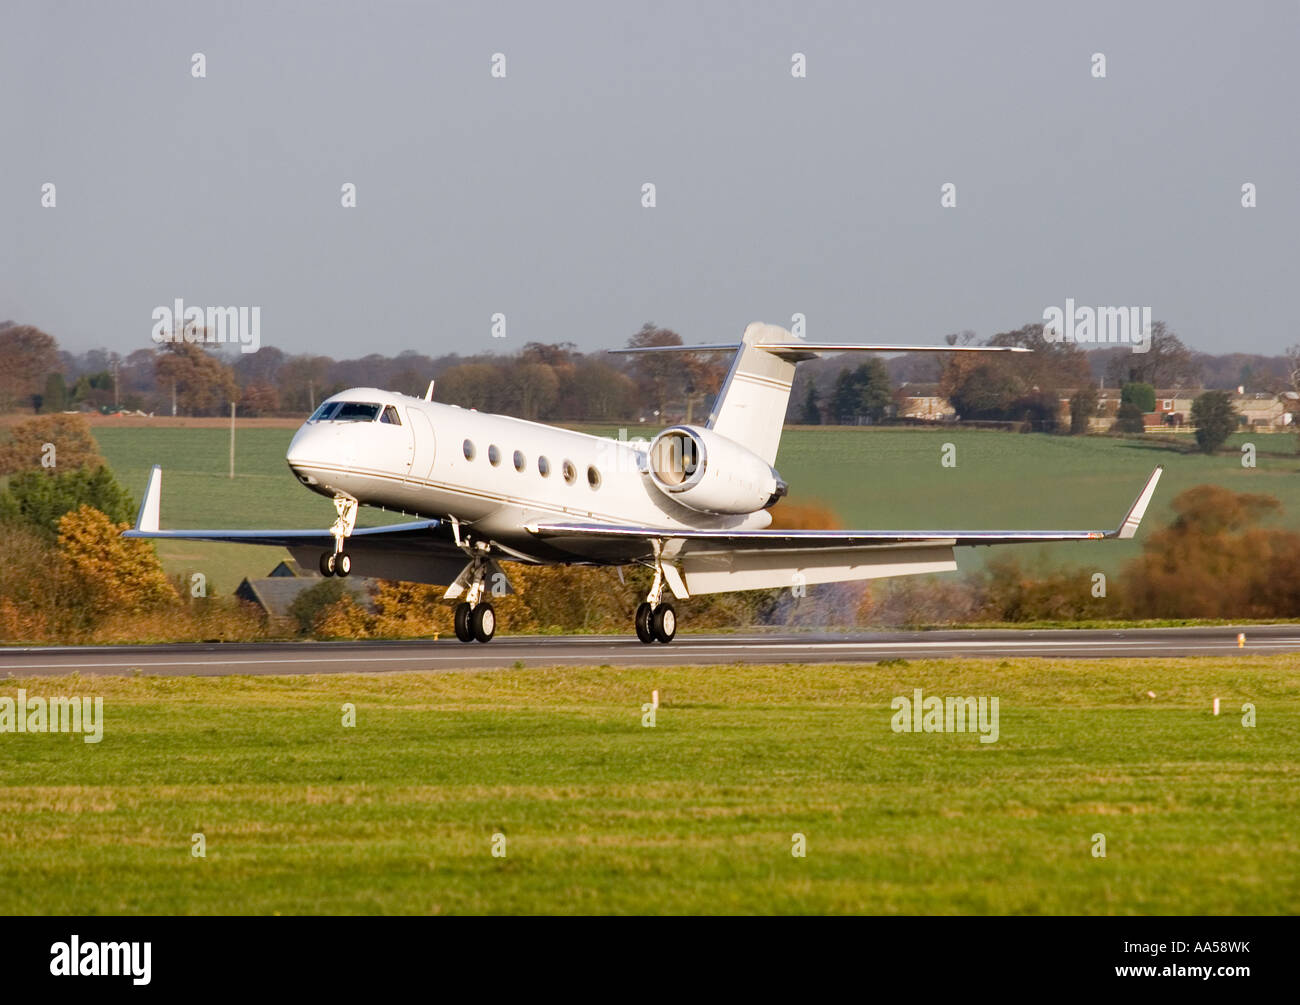 Gulfstream Aerospace G IV executive jet touching down on an airport runway - Stock Image